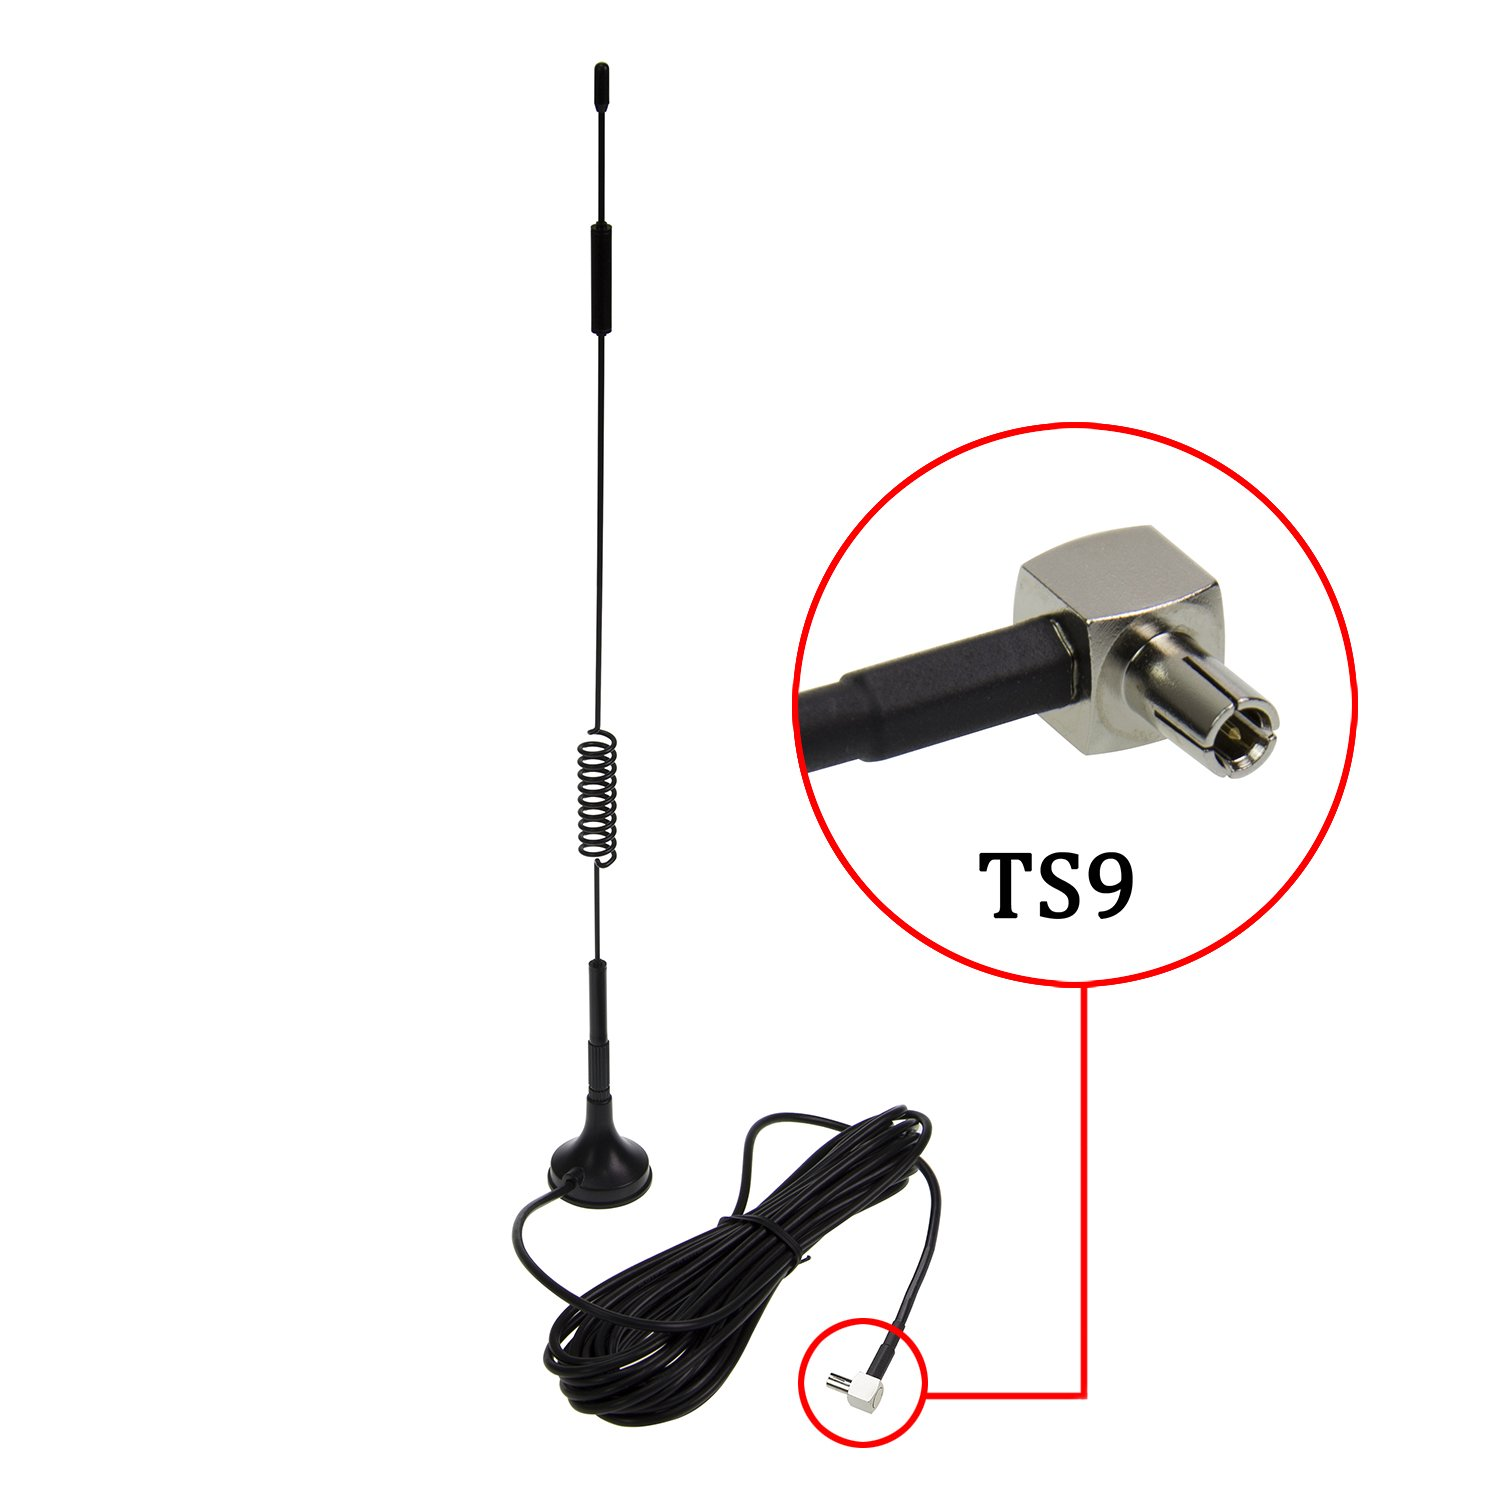 TS9 Connector Antenna 7DBi High Gain 4G LTE CPRS GSM 3G 2.4G WCDMA Omni Directional Antenna with Magnetic Stand Base 5m RG174 Extension Cable for WiFi Router Mobile Broadband Outdoor Signal Booster by HIGHFINE